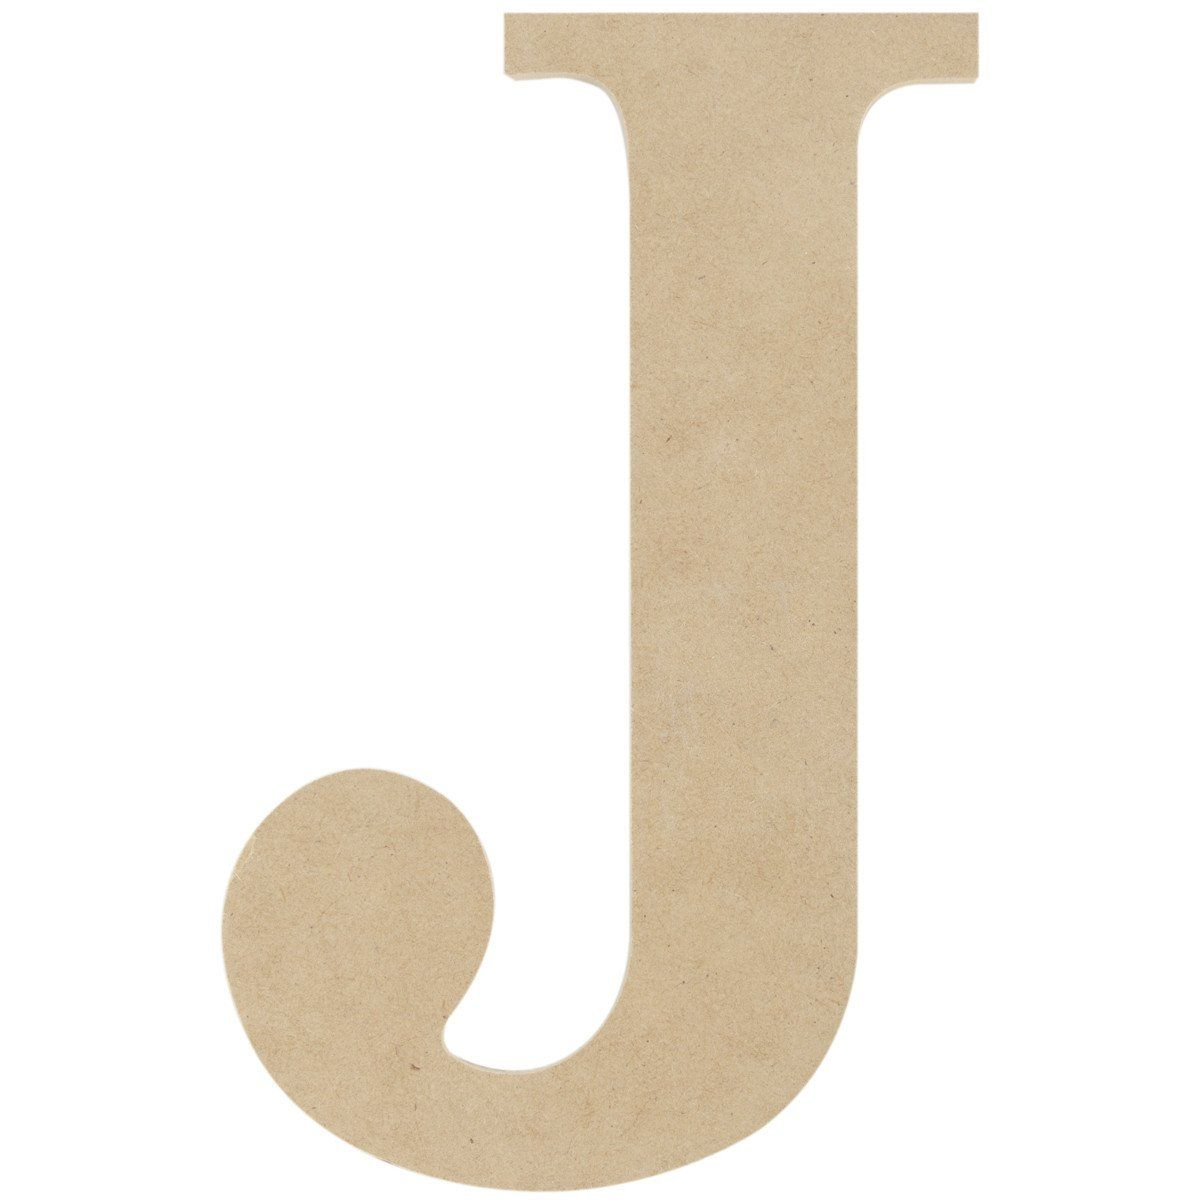 Mdf Classic Font Wood Letters Numbers And Symbols J Punch Needle Classic Fonts Lettering Mdf Letters